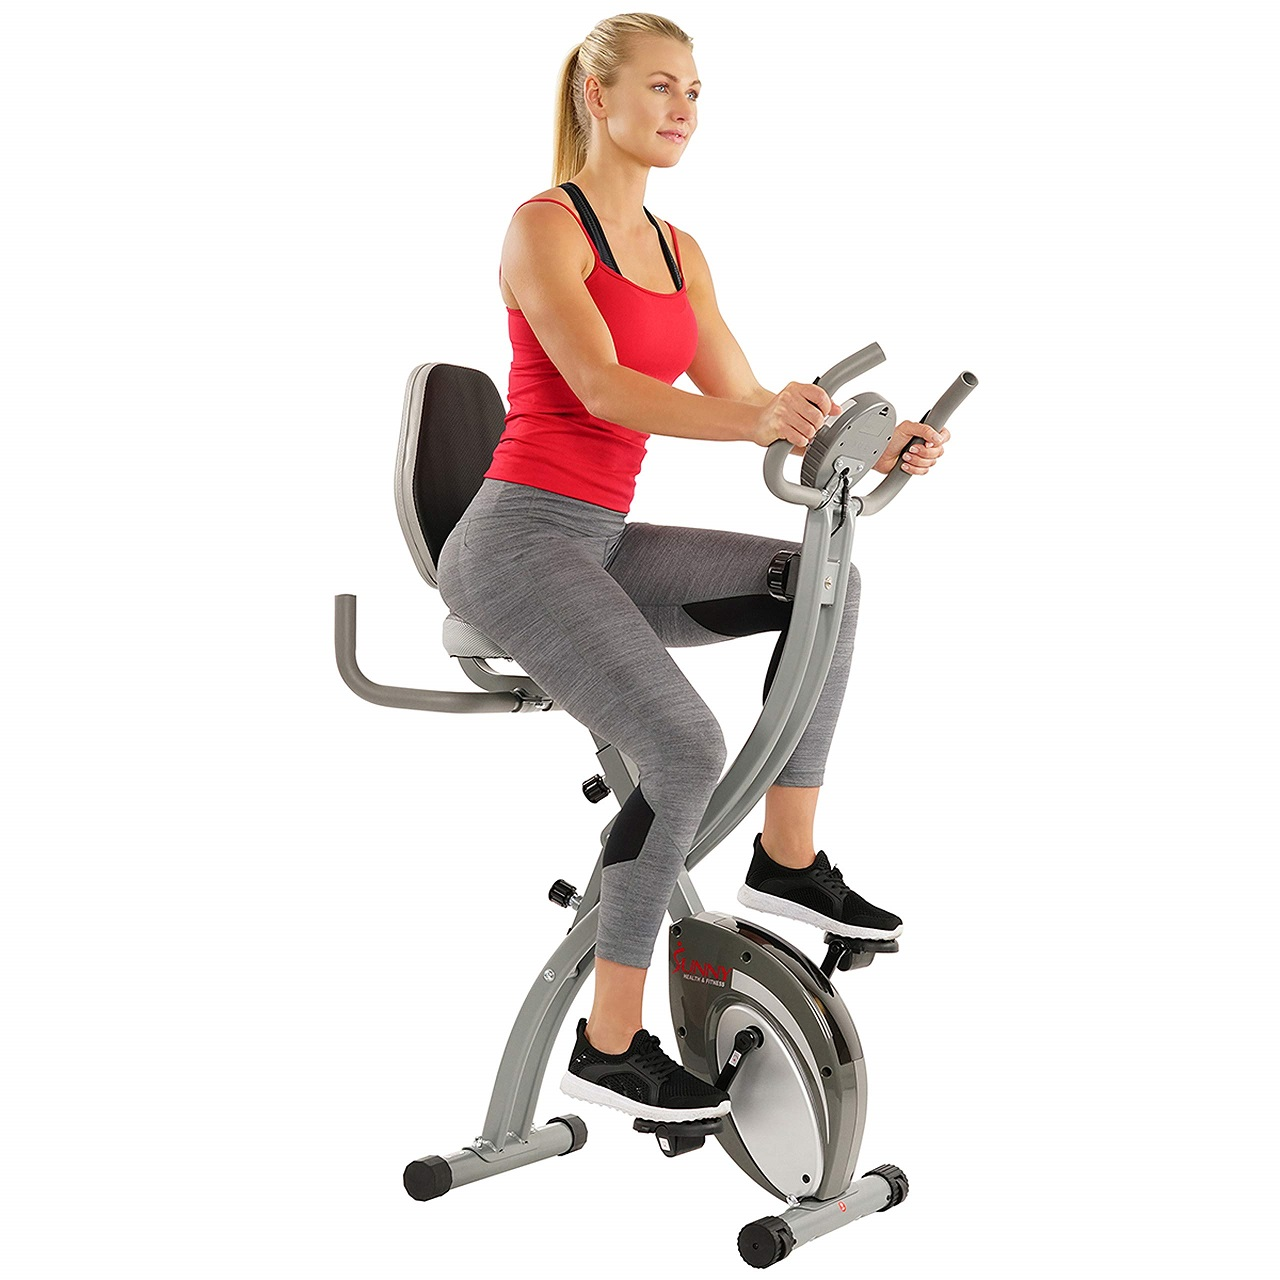 Sunny Health and Fitness Comfort XL - Best Upright Exercise Bikes for Knee Rehab